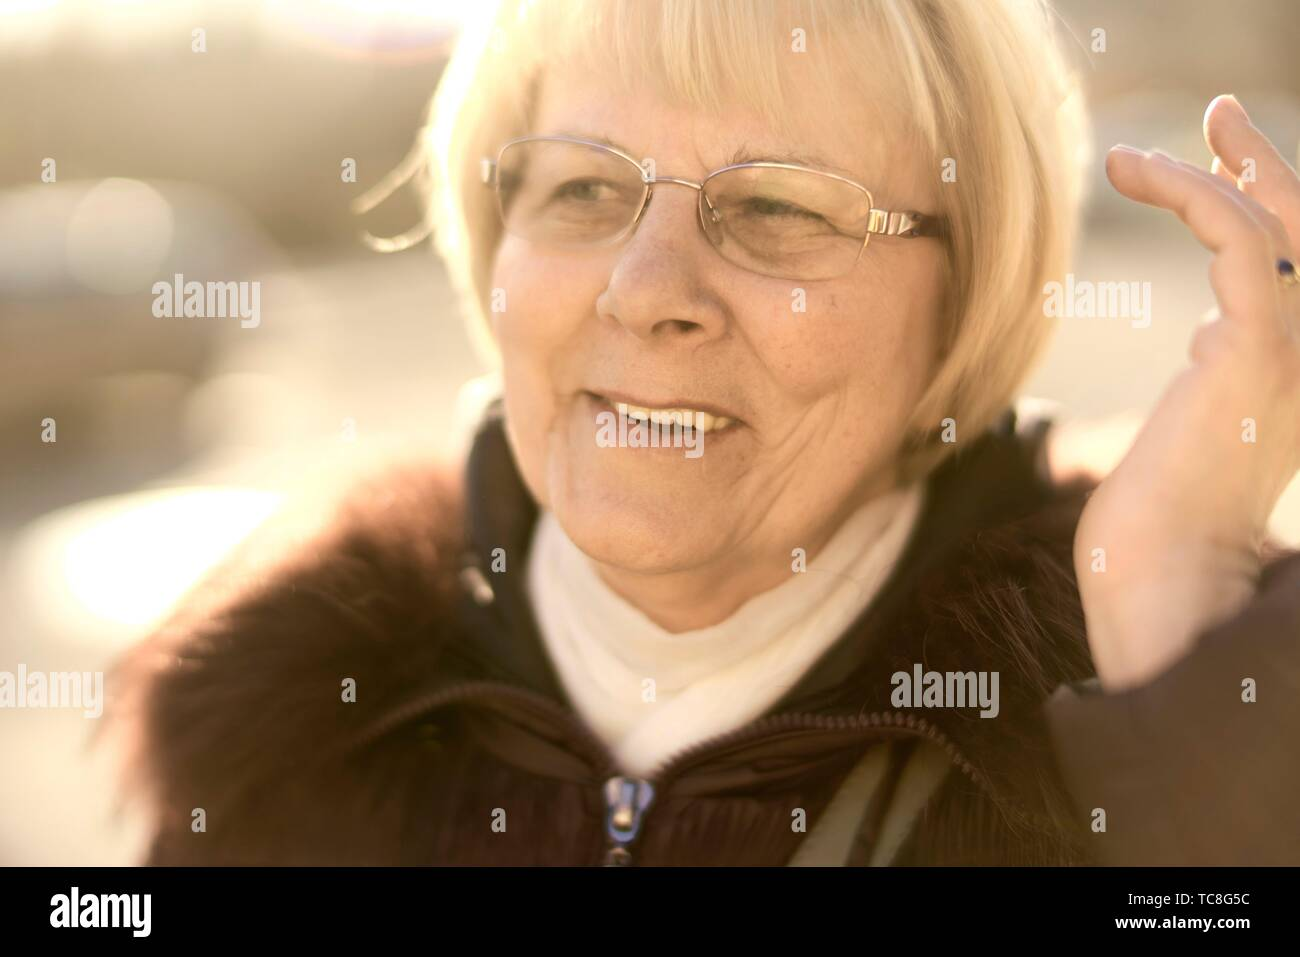 upbeat senior woman searching for idea, positiveness, in Cottbus, Brandenburg, Germany. - Stock Image